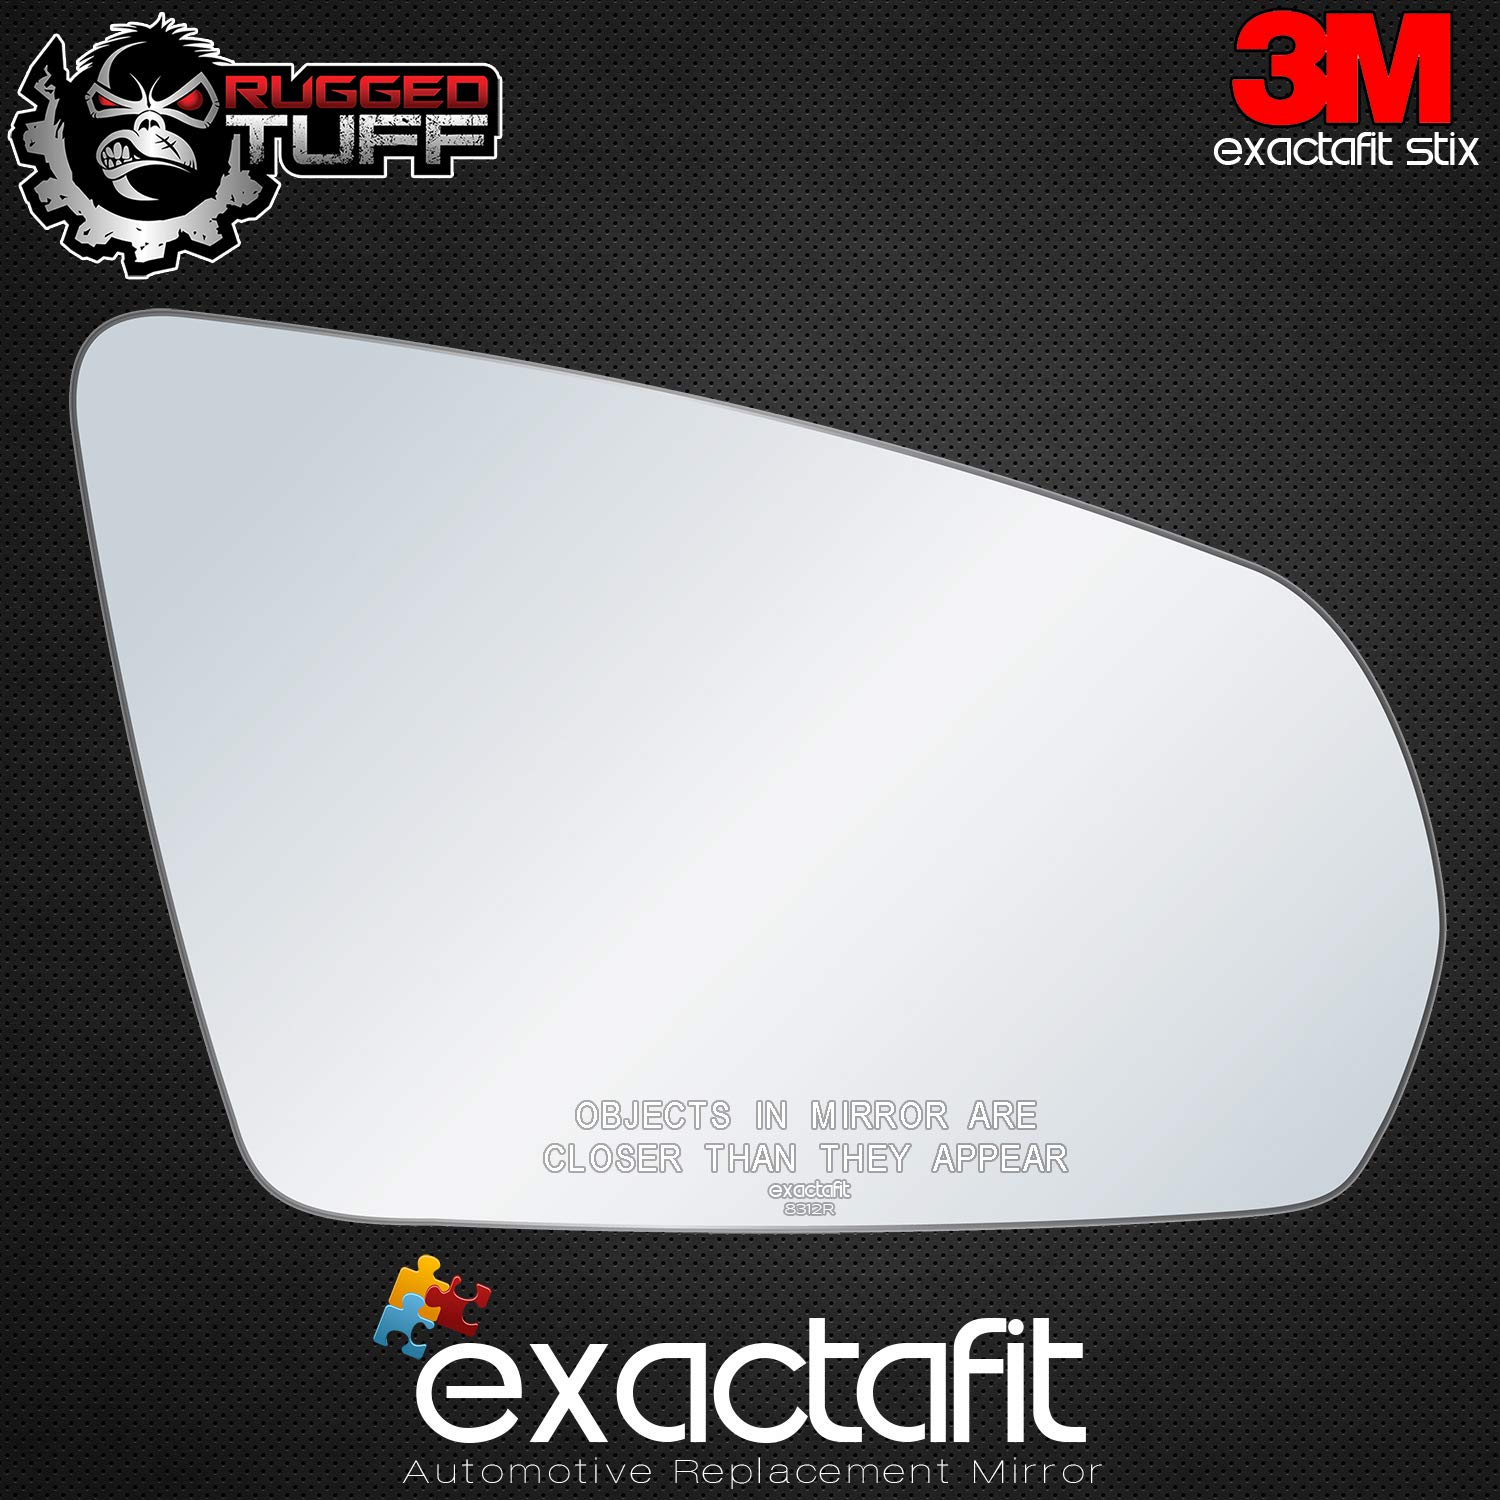 New Replacement Passenger Side Mirror Replacement Glass With Backing Compatible With 2008-2012 Chevrolet Chevy Malibu 2007-2009 Saturn Aura Sold By Rugged TUFF